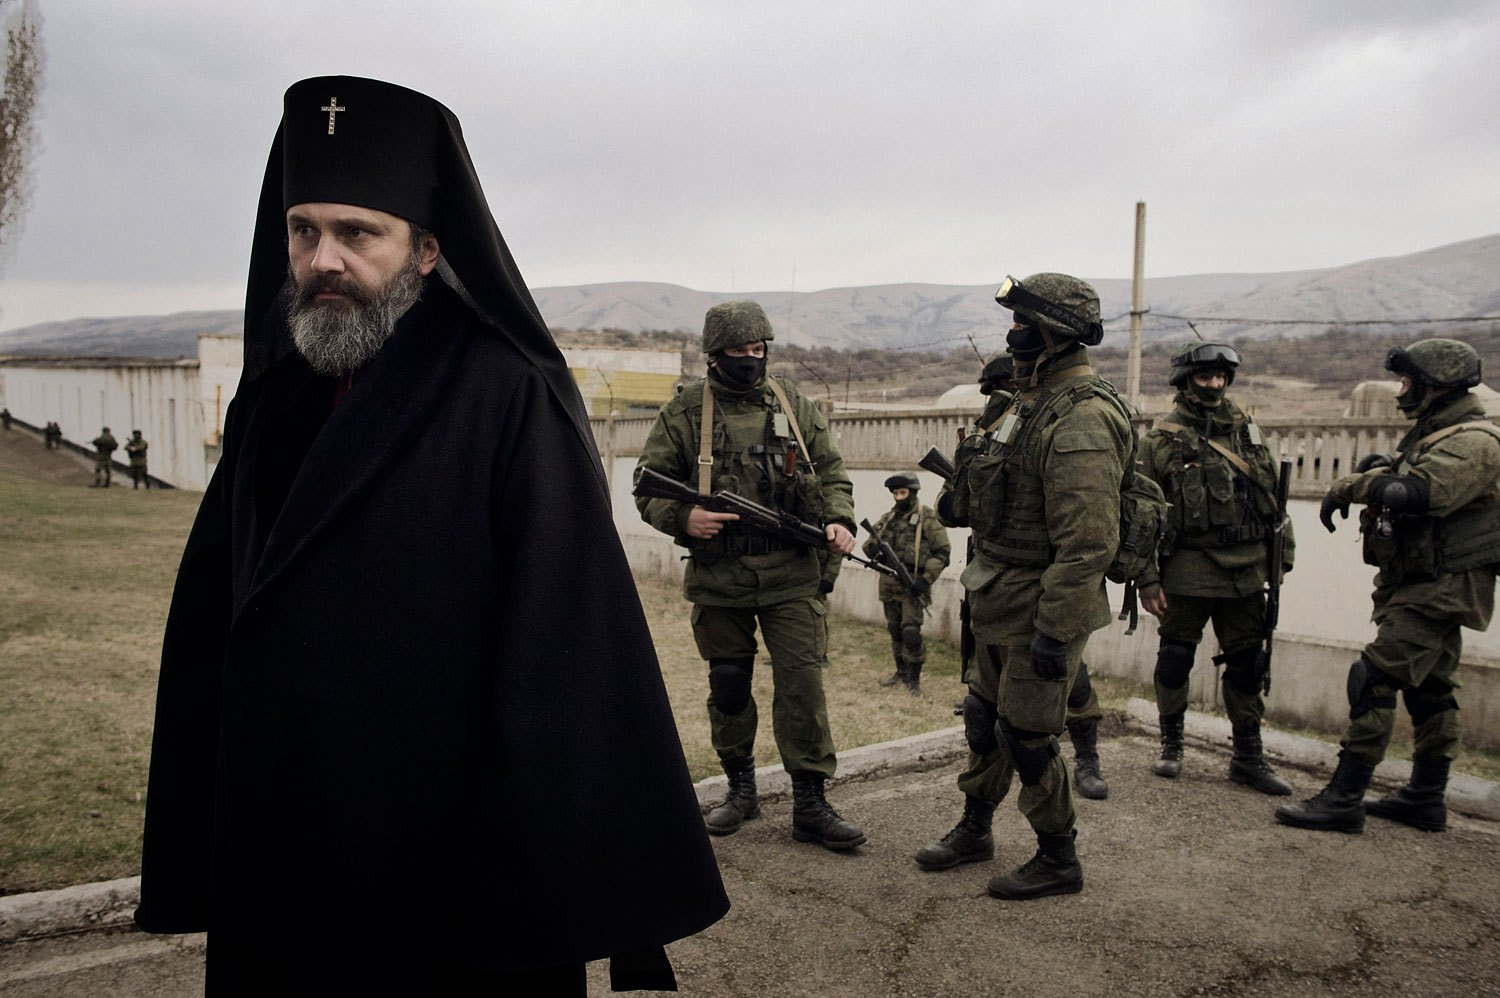 A priest stands next to troops in Perevalnoye on Sunday.